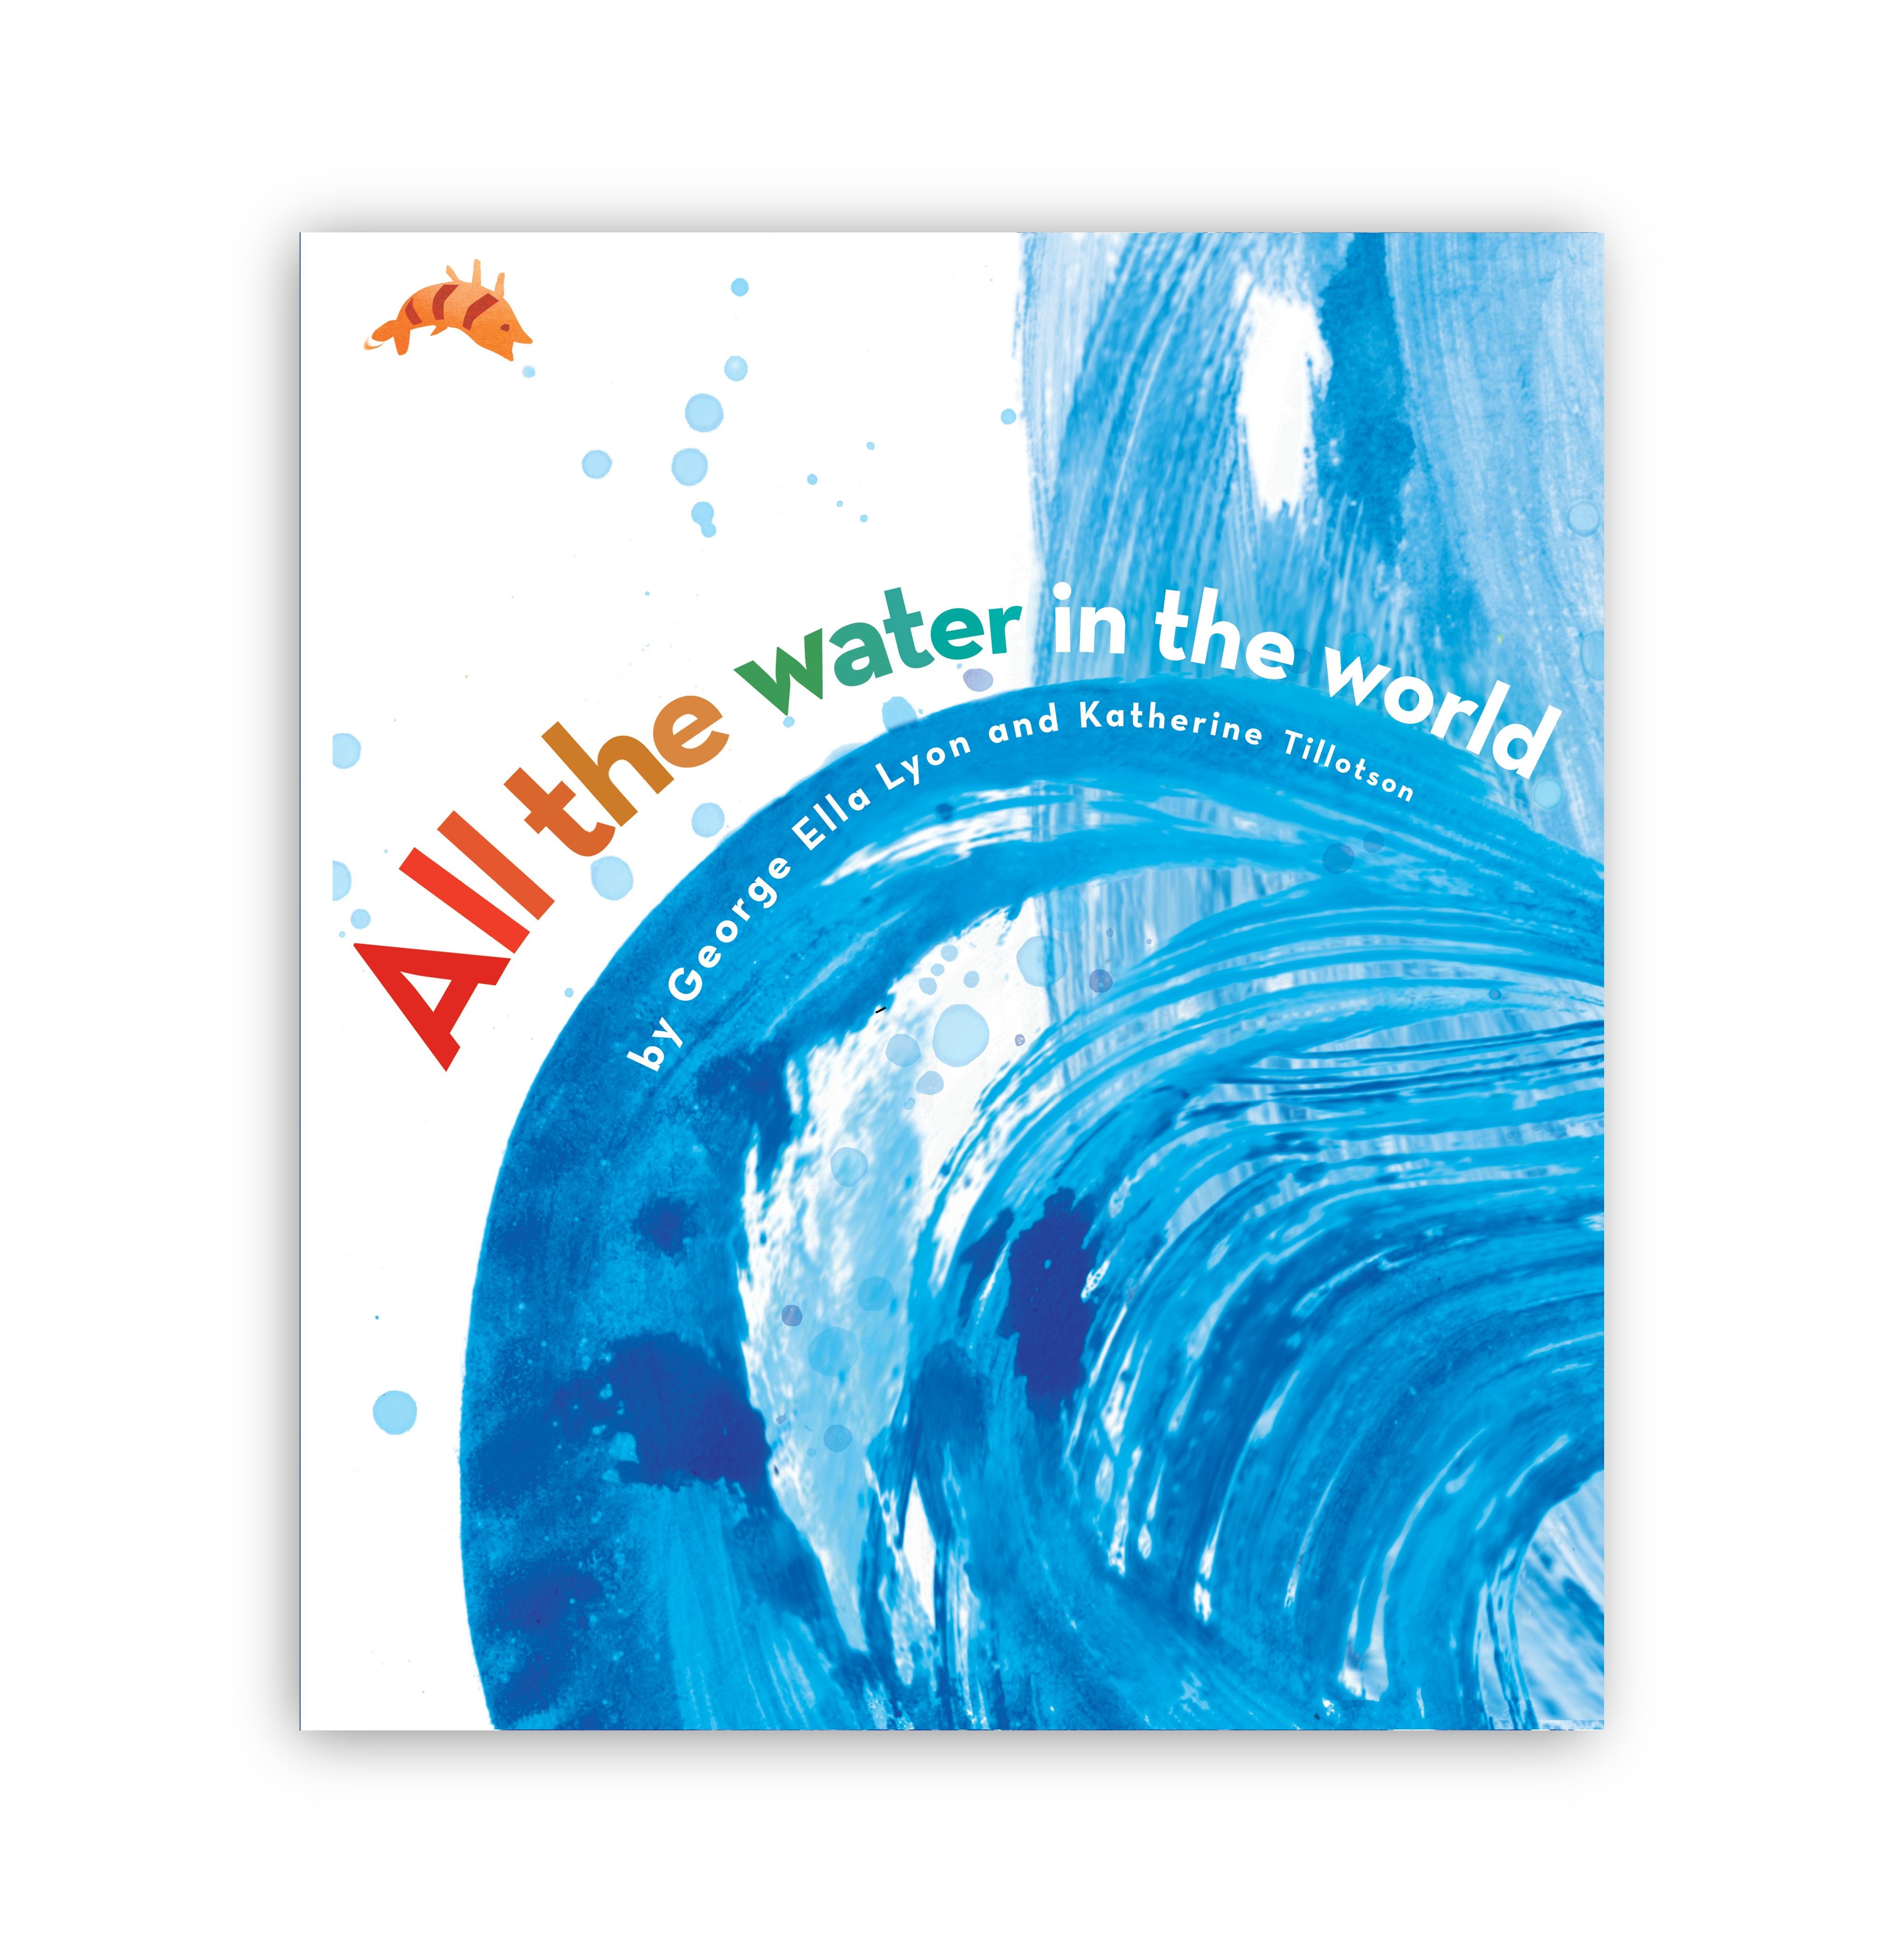 All the Water in the World (Hardcover)